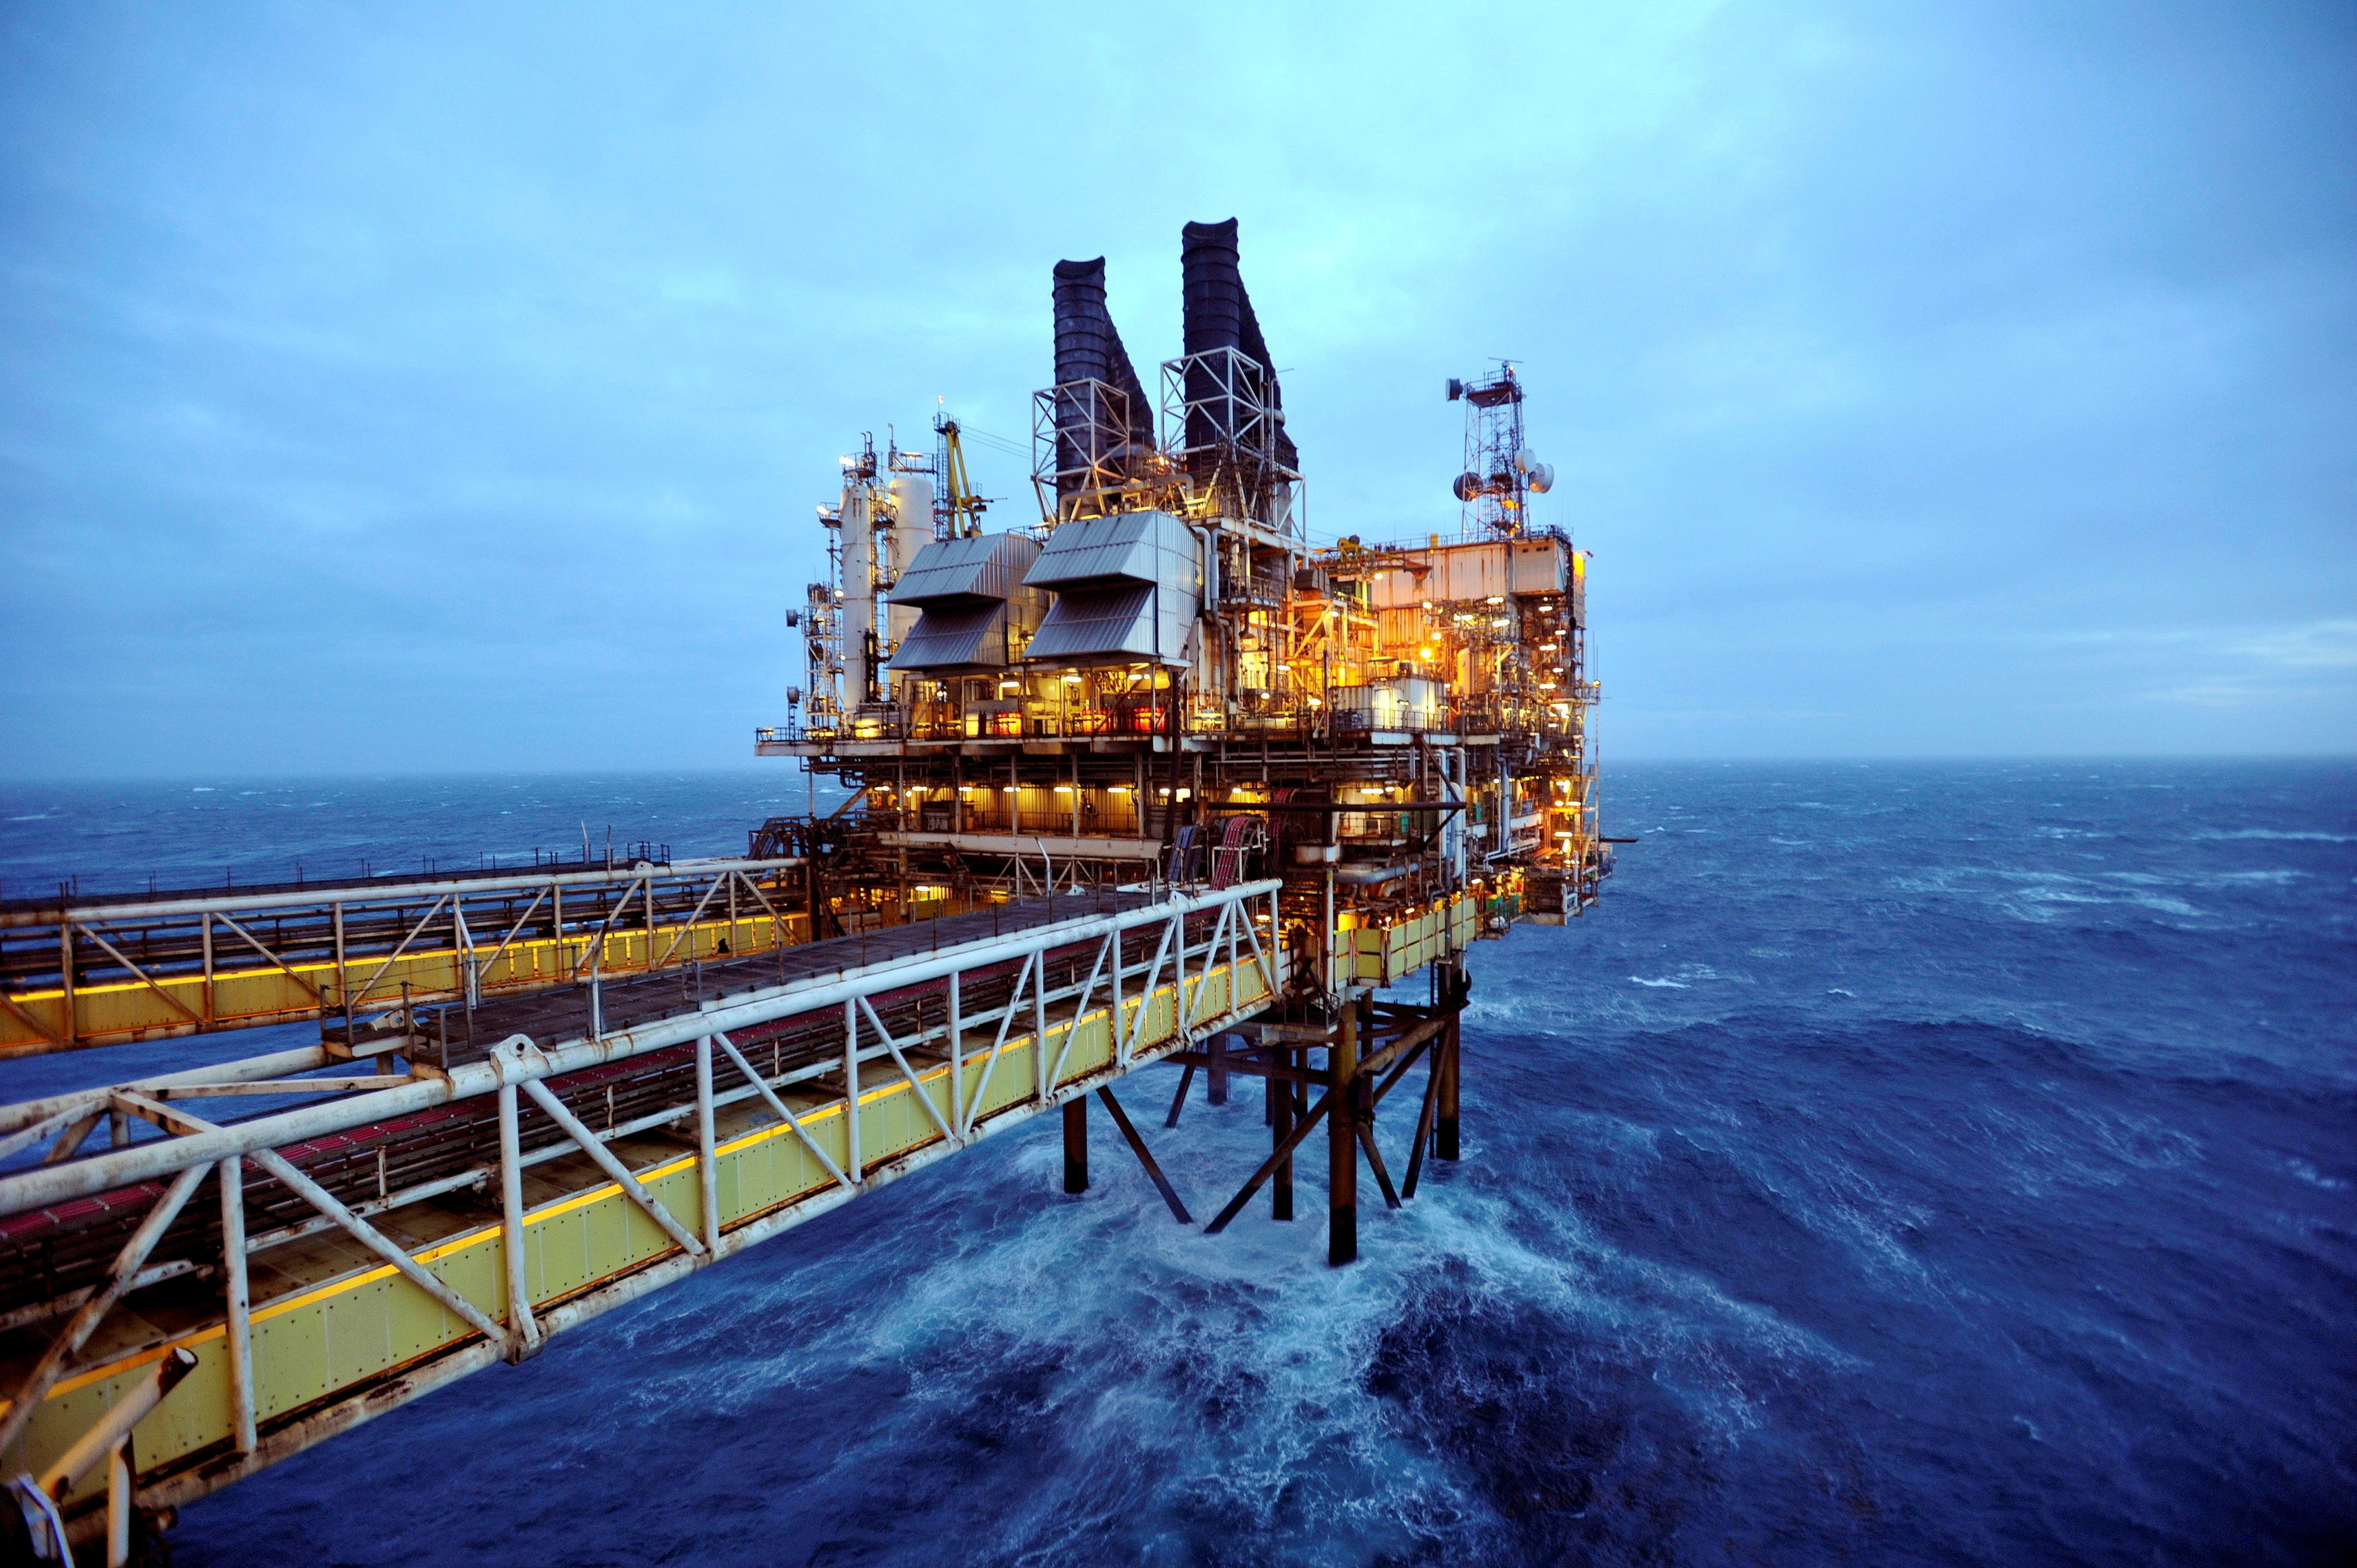 A section of the BP Eastern Trough Area Project (ETAP) oil platform is seen in the North Sea, about 100 miles east of Aberdeen in Scotland, February 24, 2014. REUTERS/Andy Buchanan